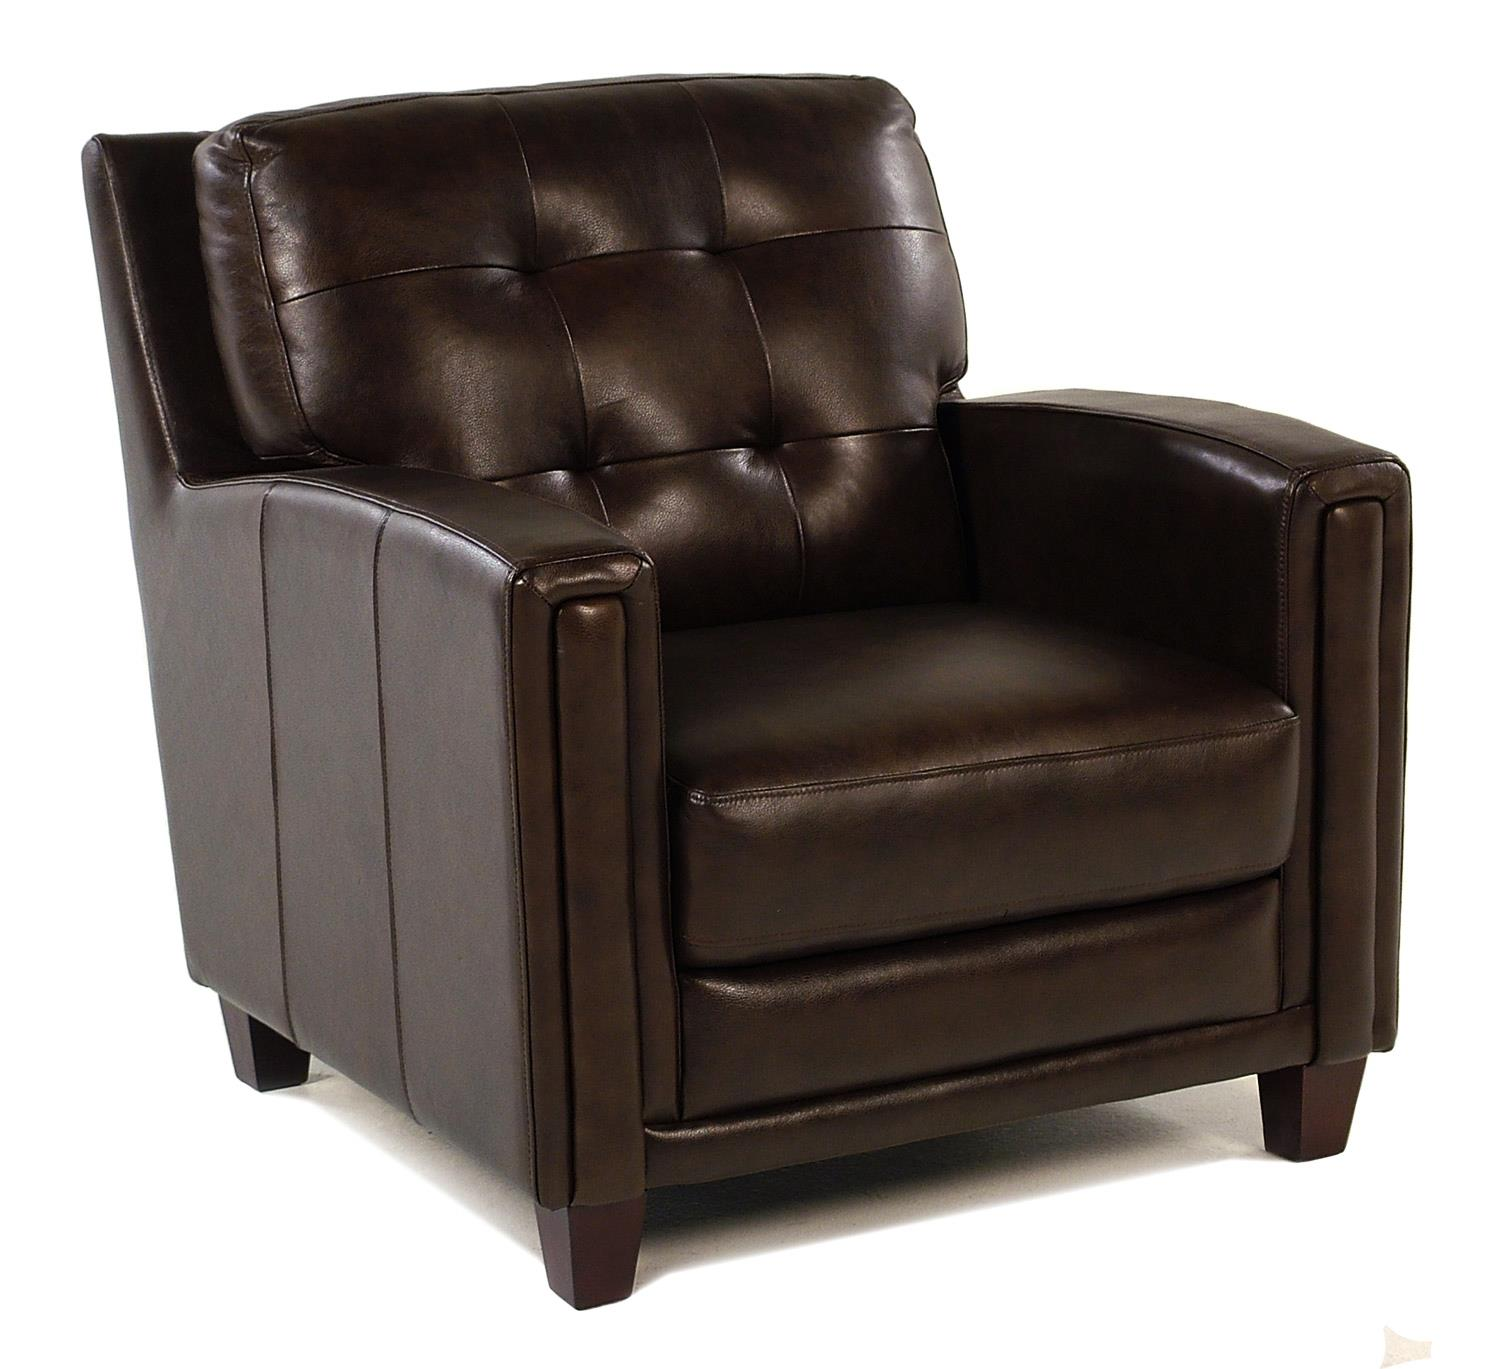 Loft Leather Winfield Leather Chair - Item Number: 8583-15